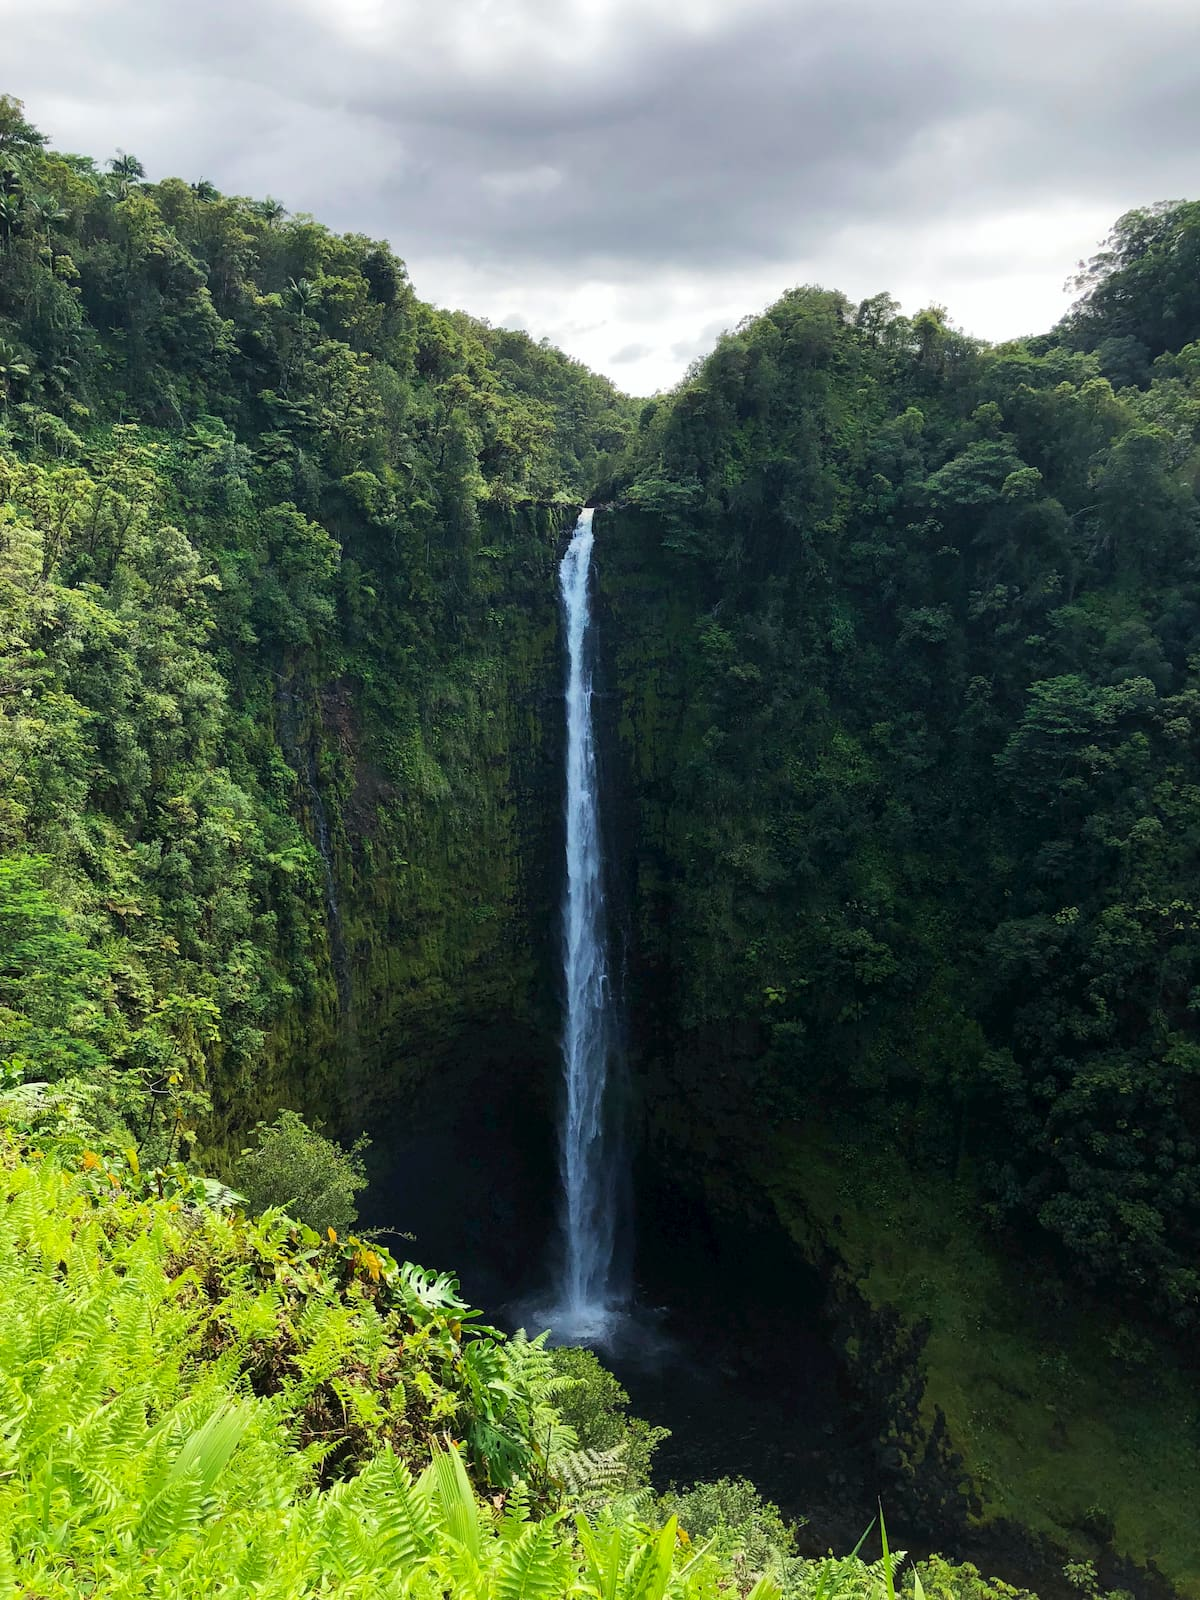 Extremely tall waterfall pouring over lush forested cliffs into a cavern below.